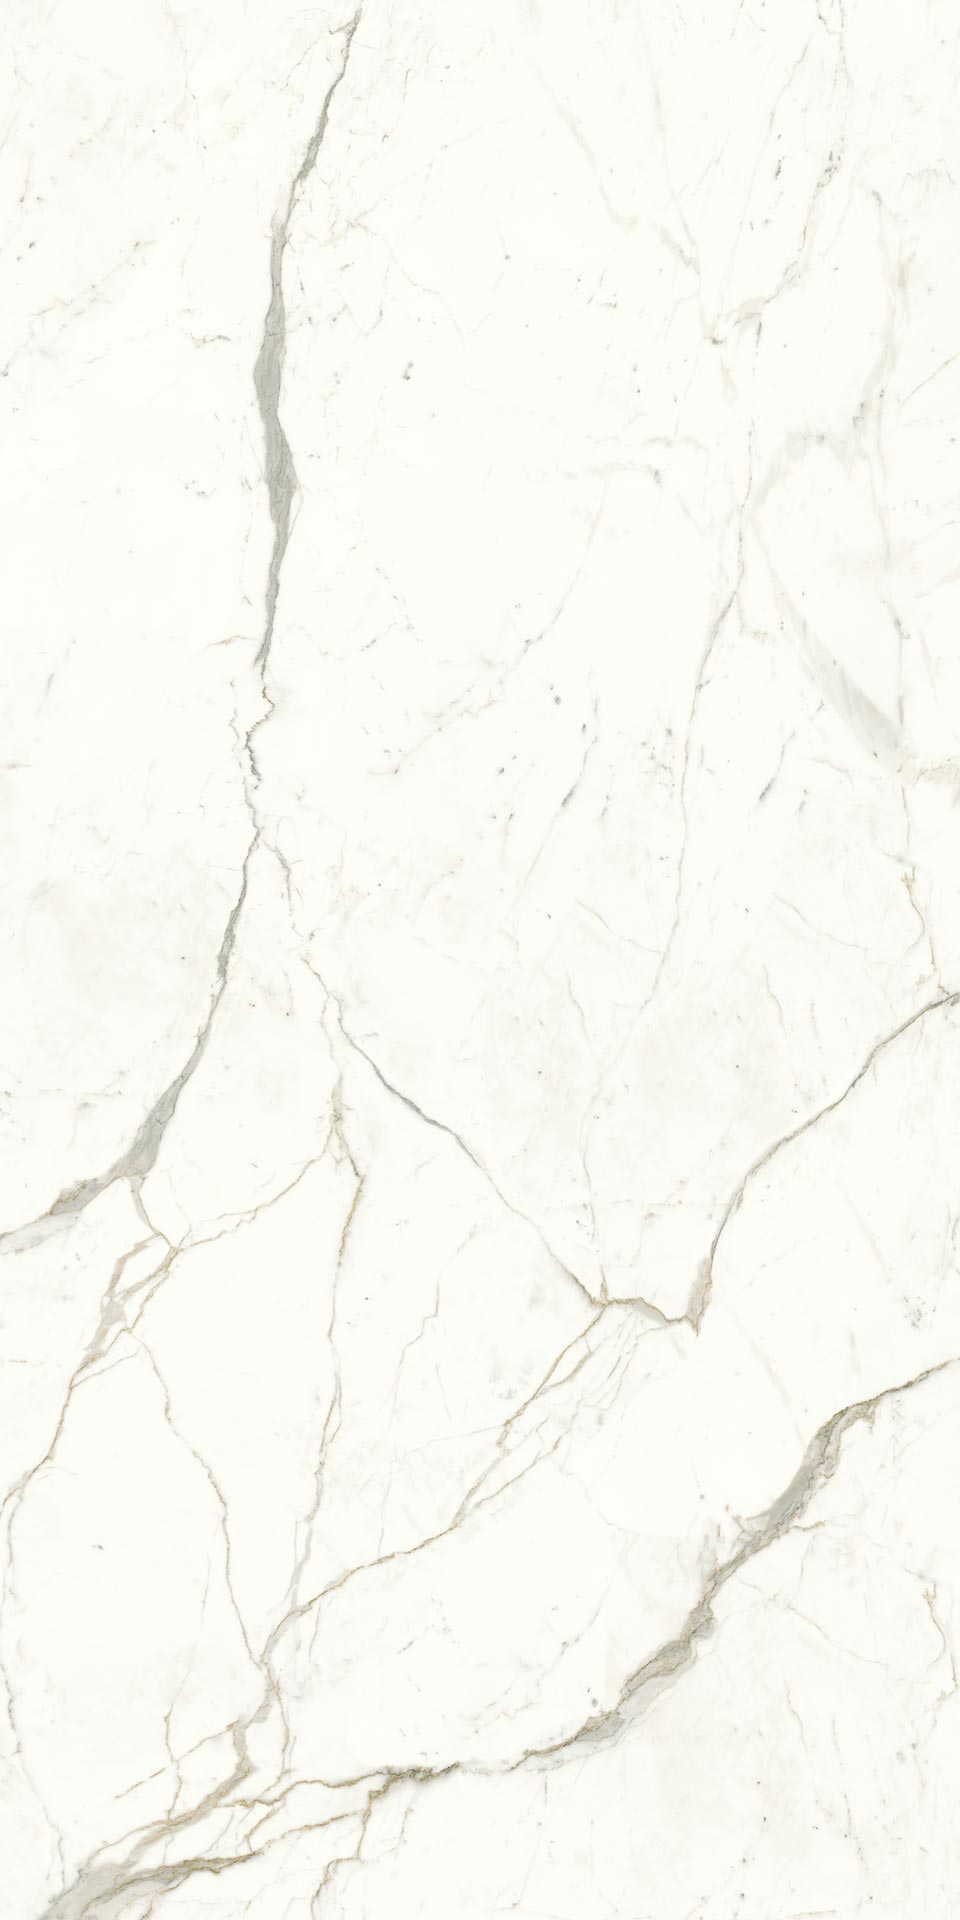 120x240-10-atlas-plan-calacatta-prestigio-large-sized-tile